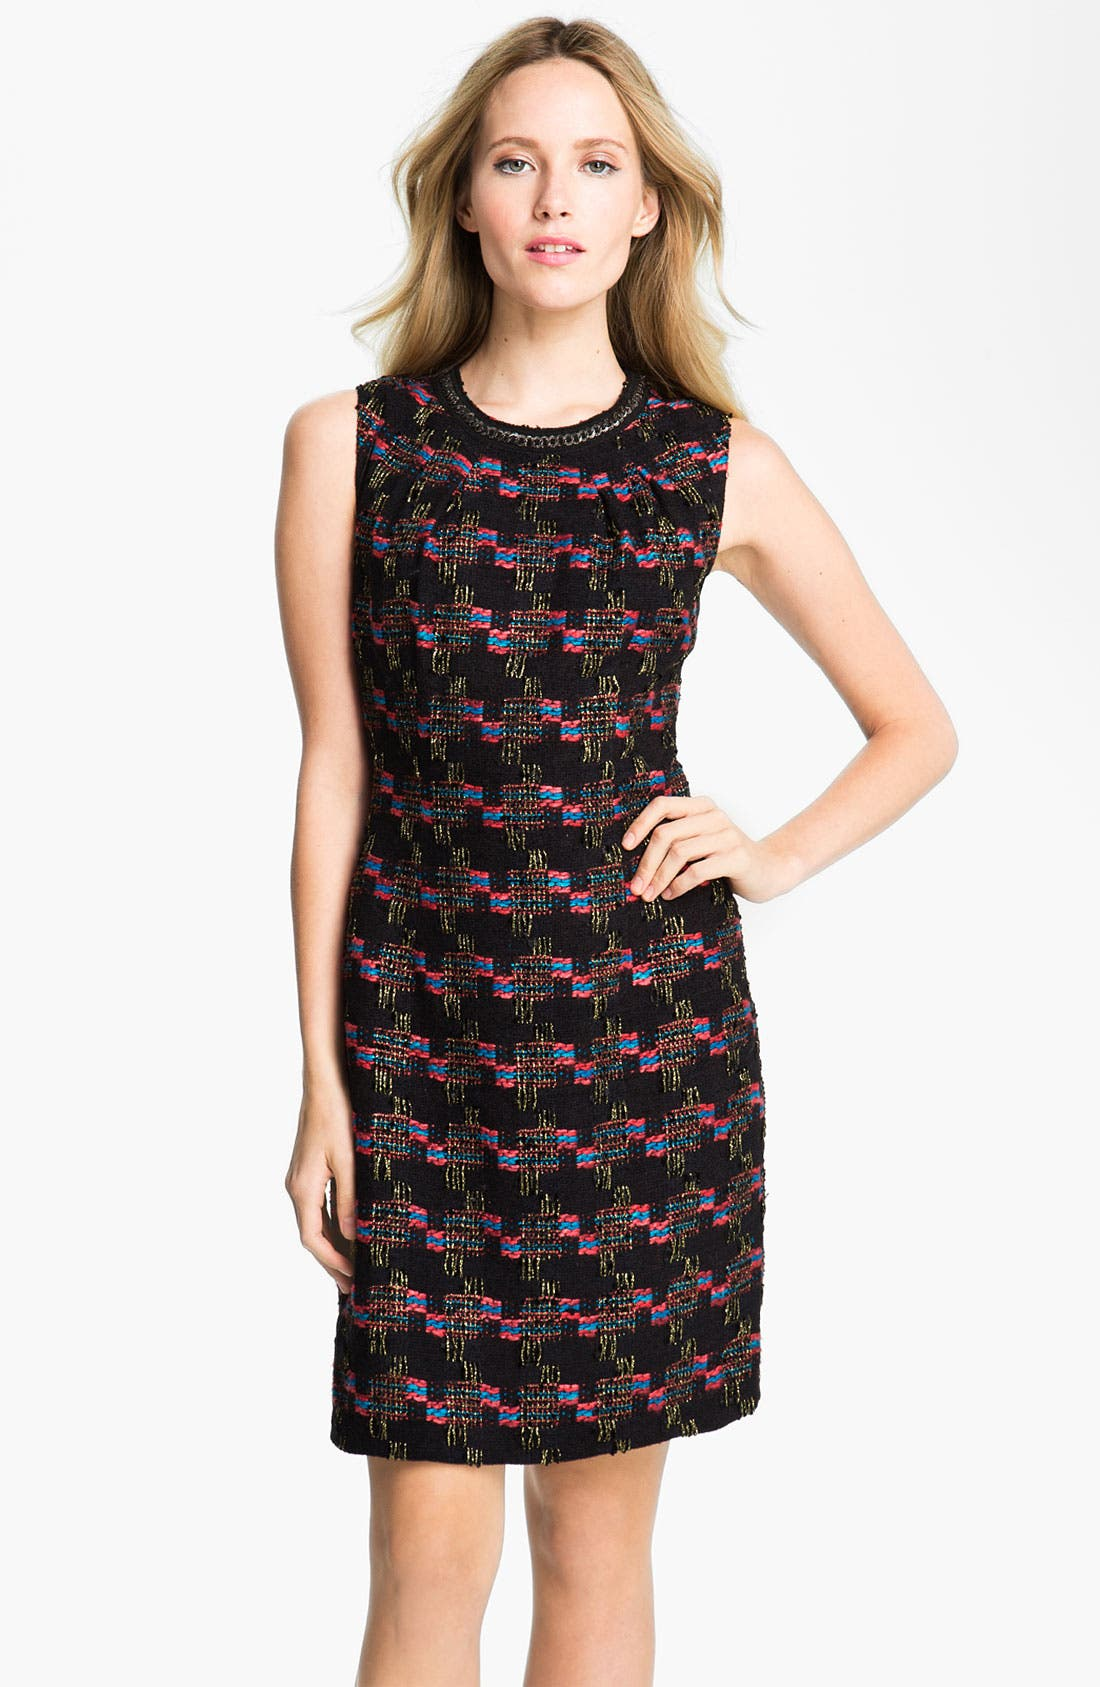 Alternate Image 1 Selected - Trina Turk 'Good Night' Tweed Sheath Dress